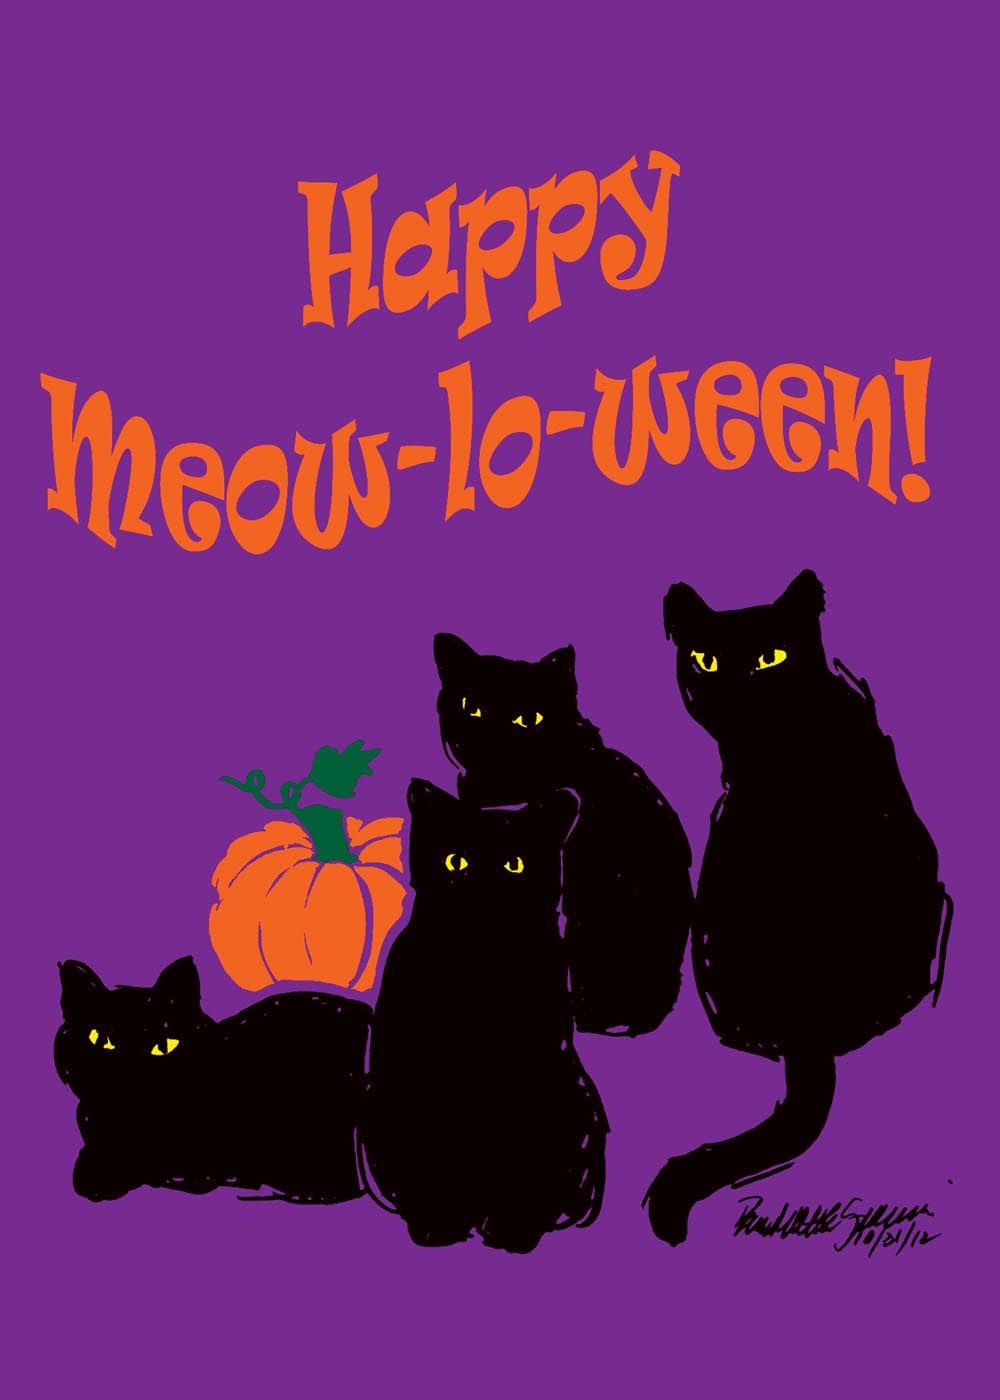 happy meowlowween